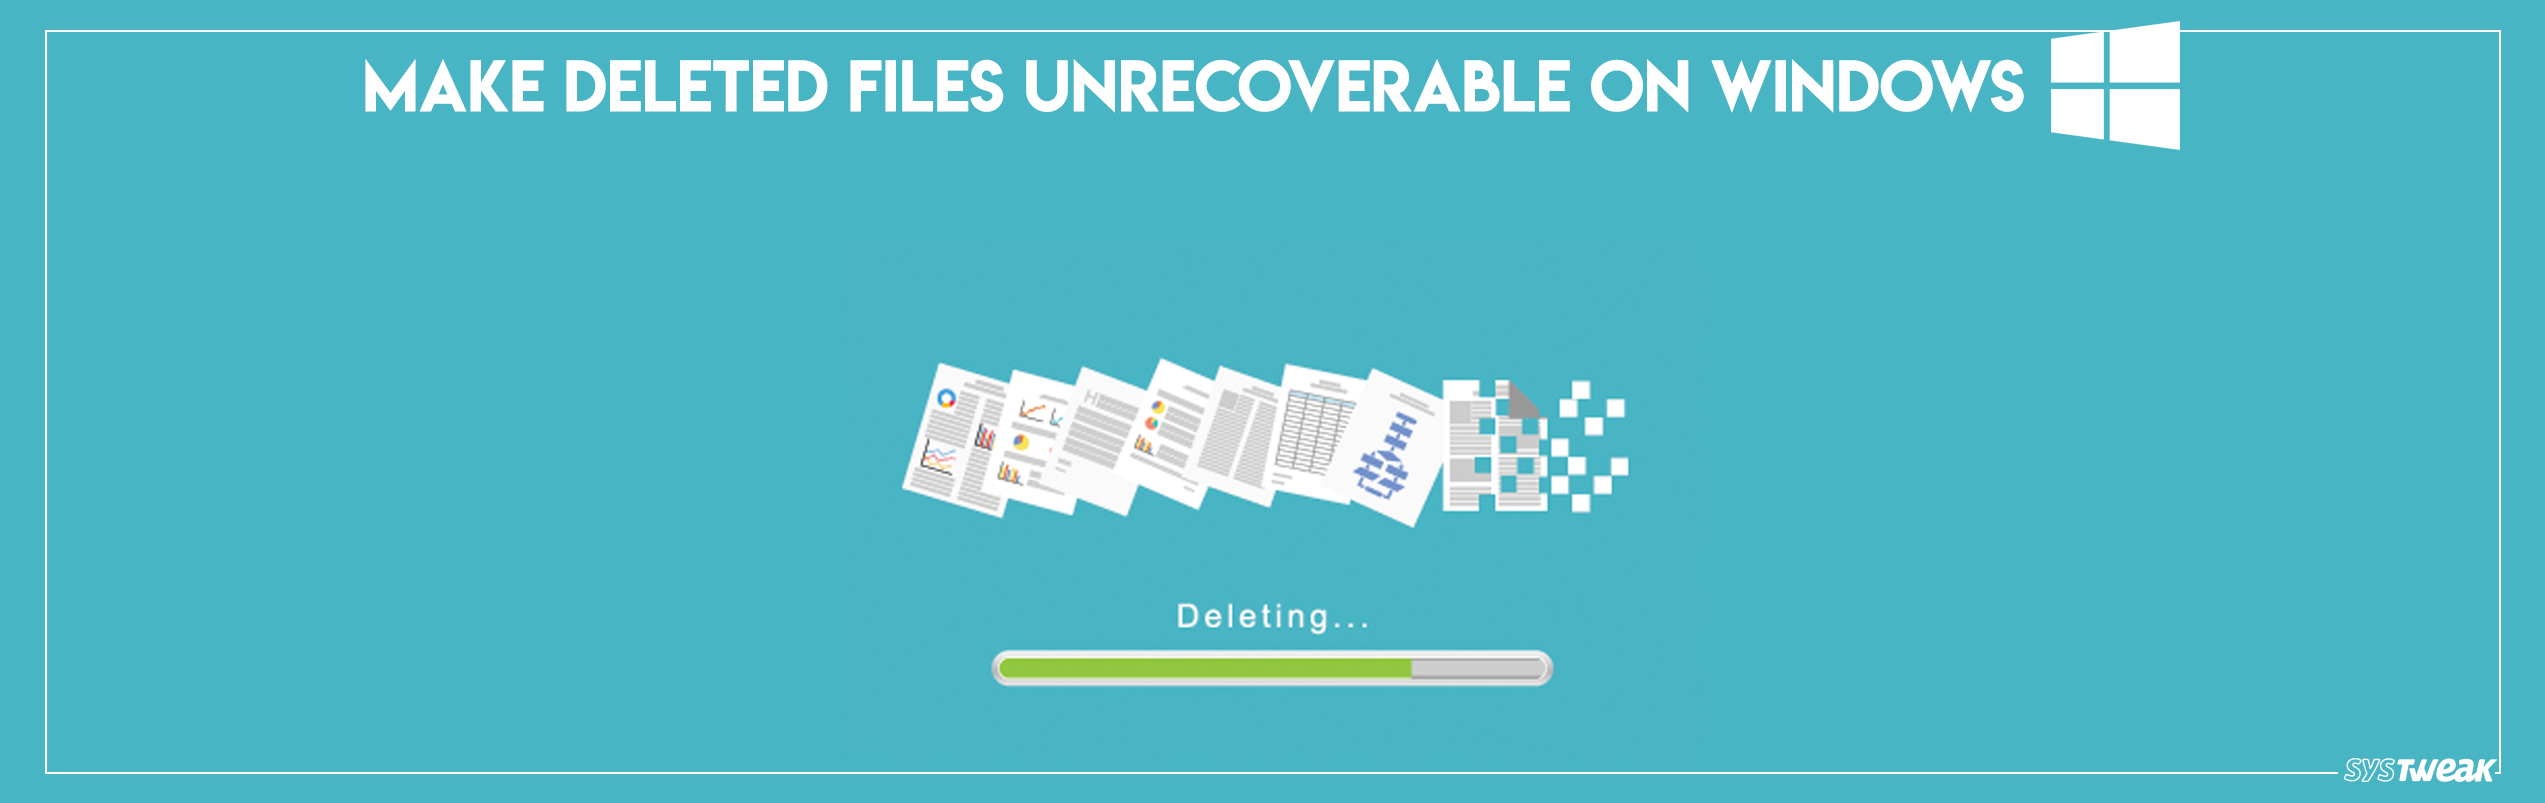 How to Make Deleted Files Unrecoverable On Windows 10, 8, 7?